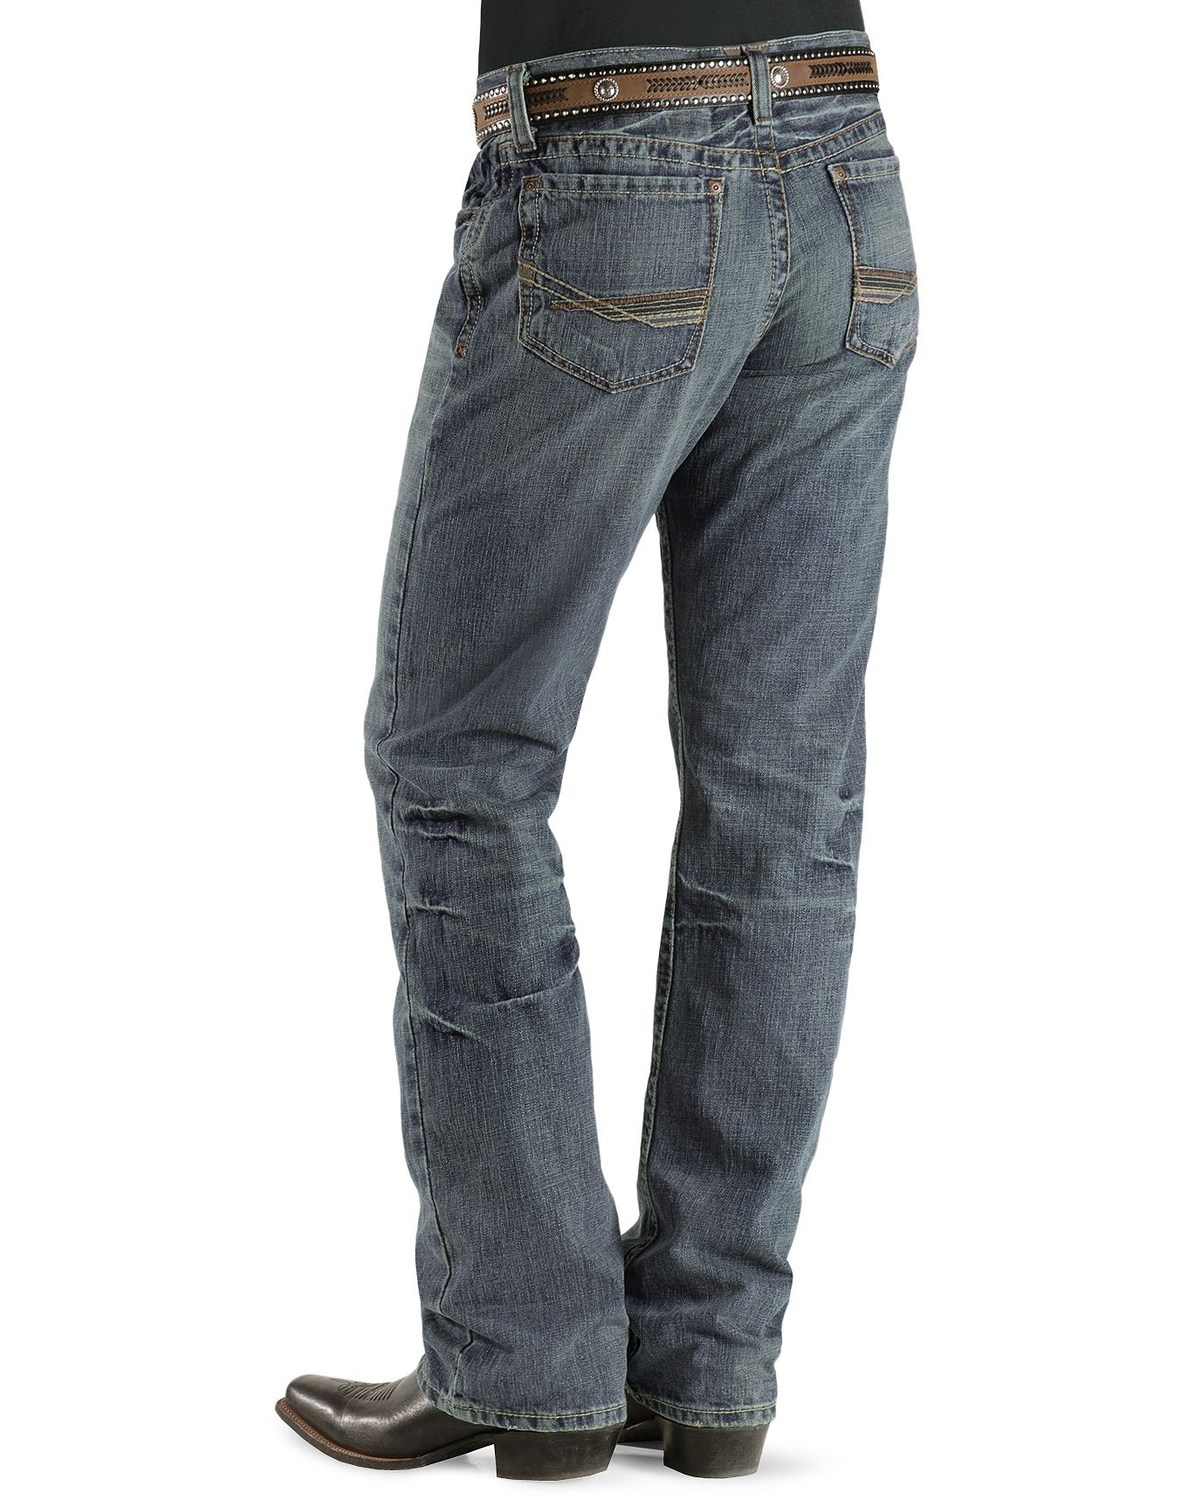 f709f49ff0a Ariat Denim Jeans - M4 Scoundrel Relaxed Fit